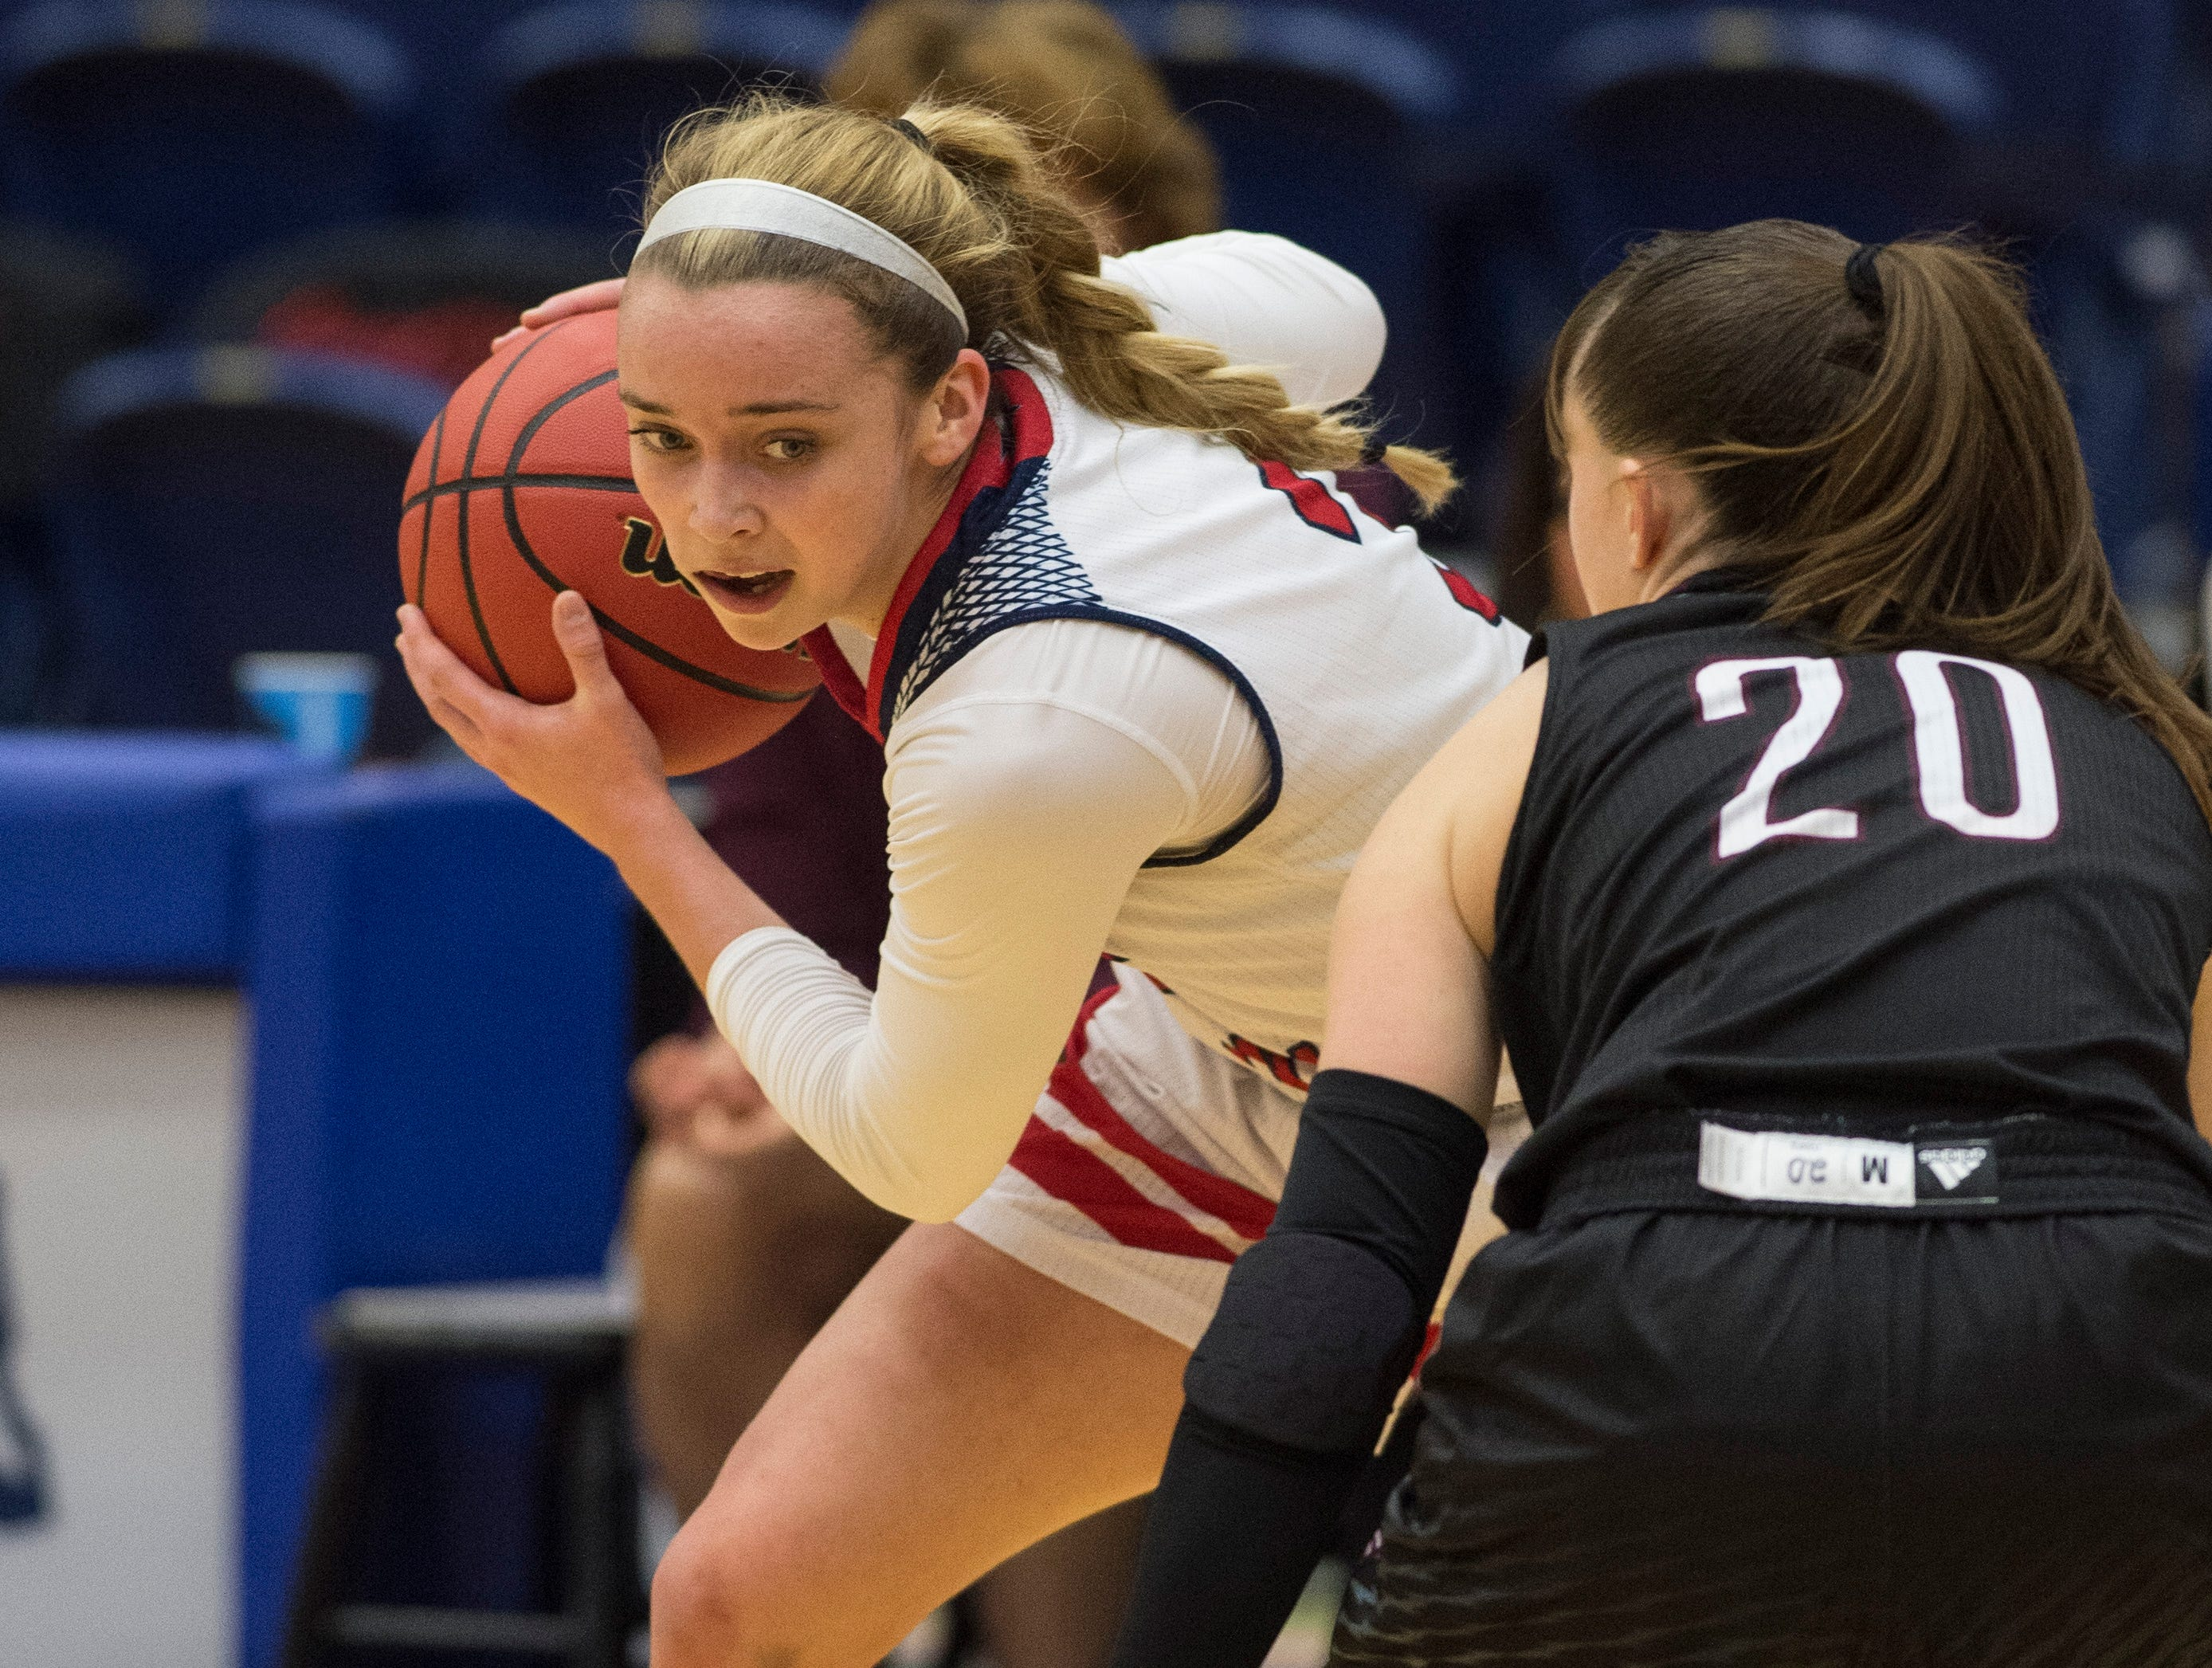 USI's Kennedy Williams (3) is guarded by Bellarmine's Katie Downey (20) during the USI vs Bellarmine game at the PAC Saturday, Dec. 1, 2018.